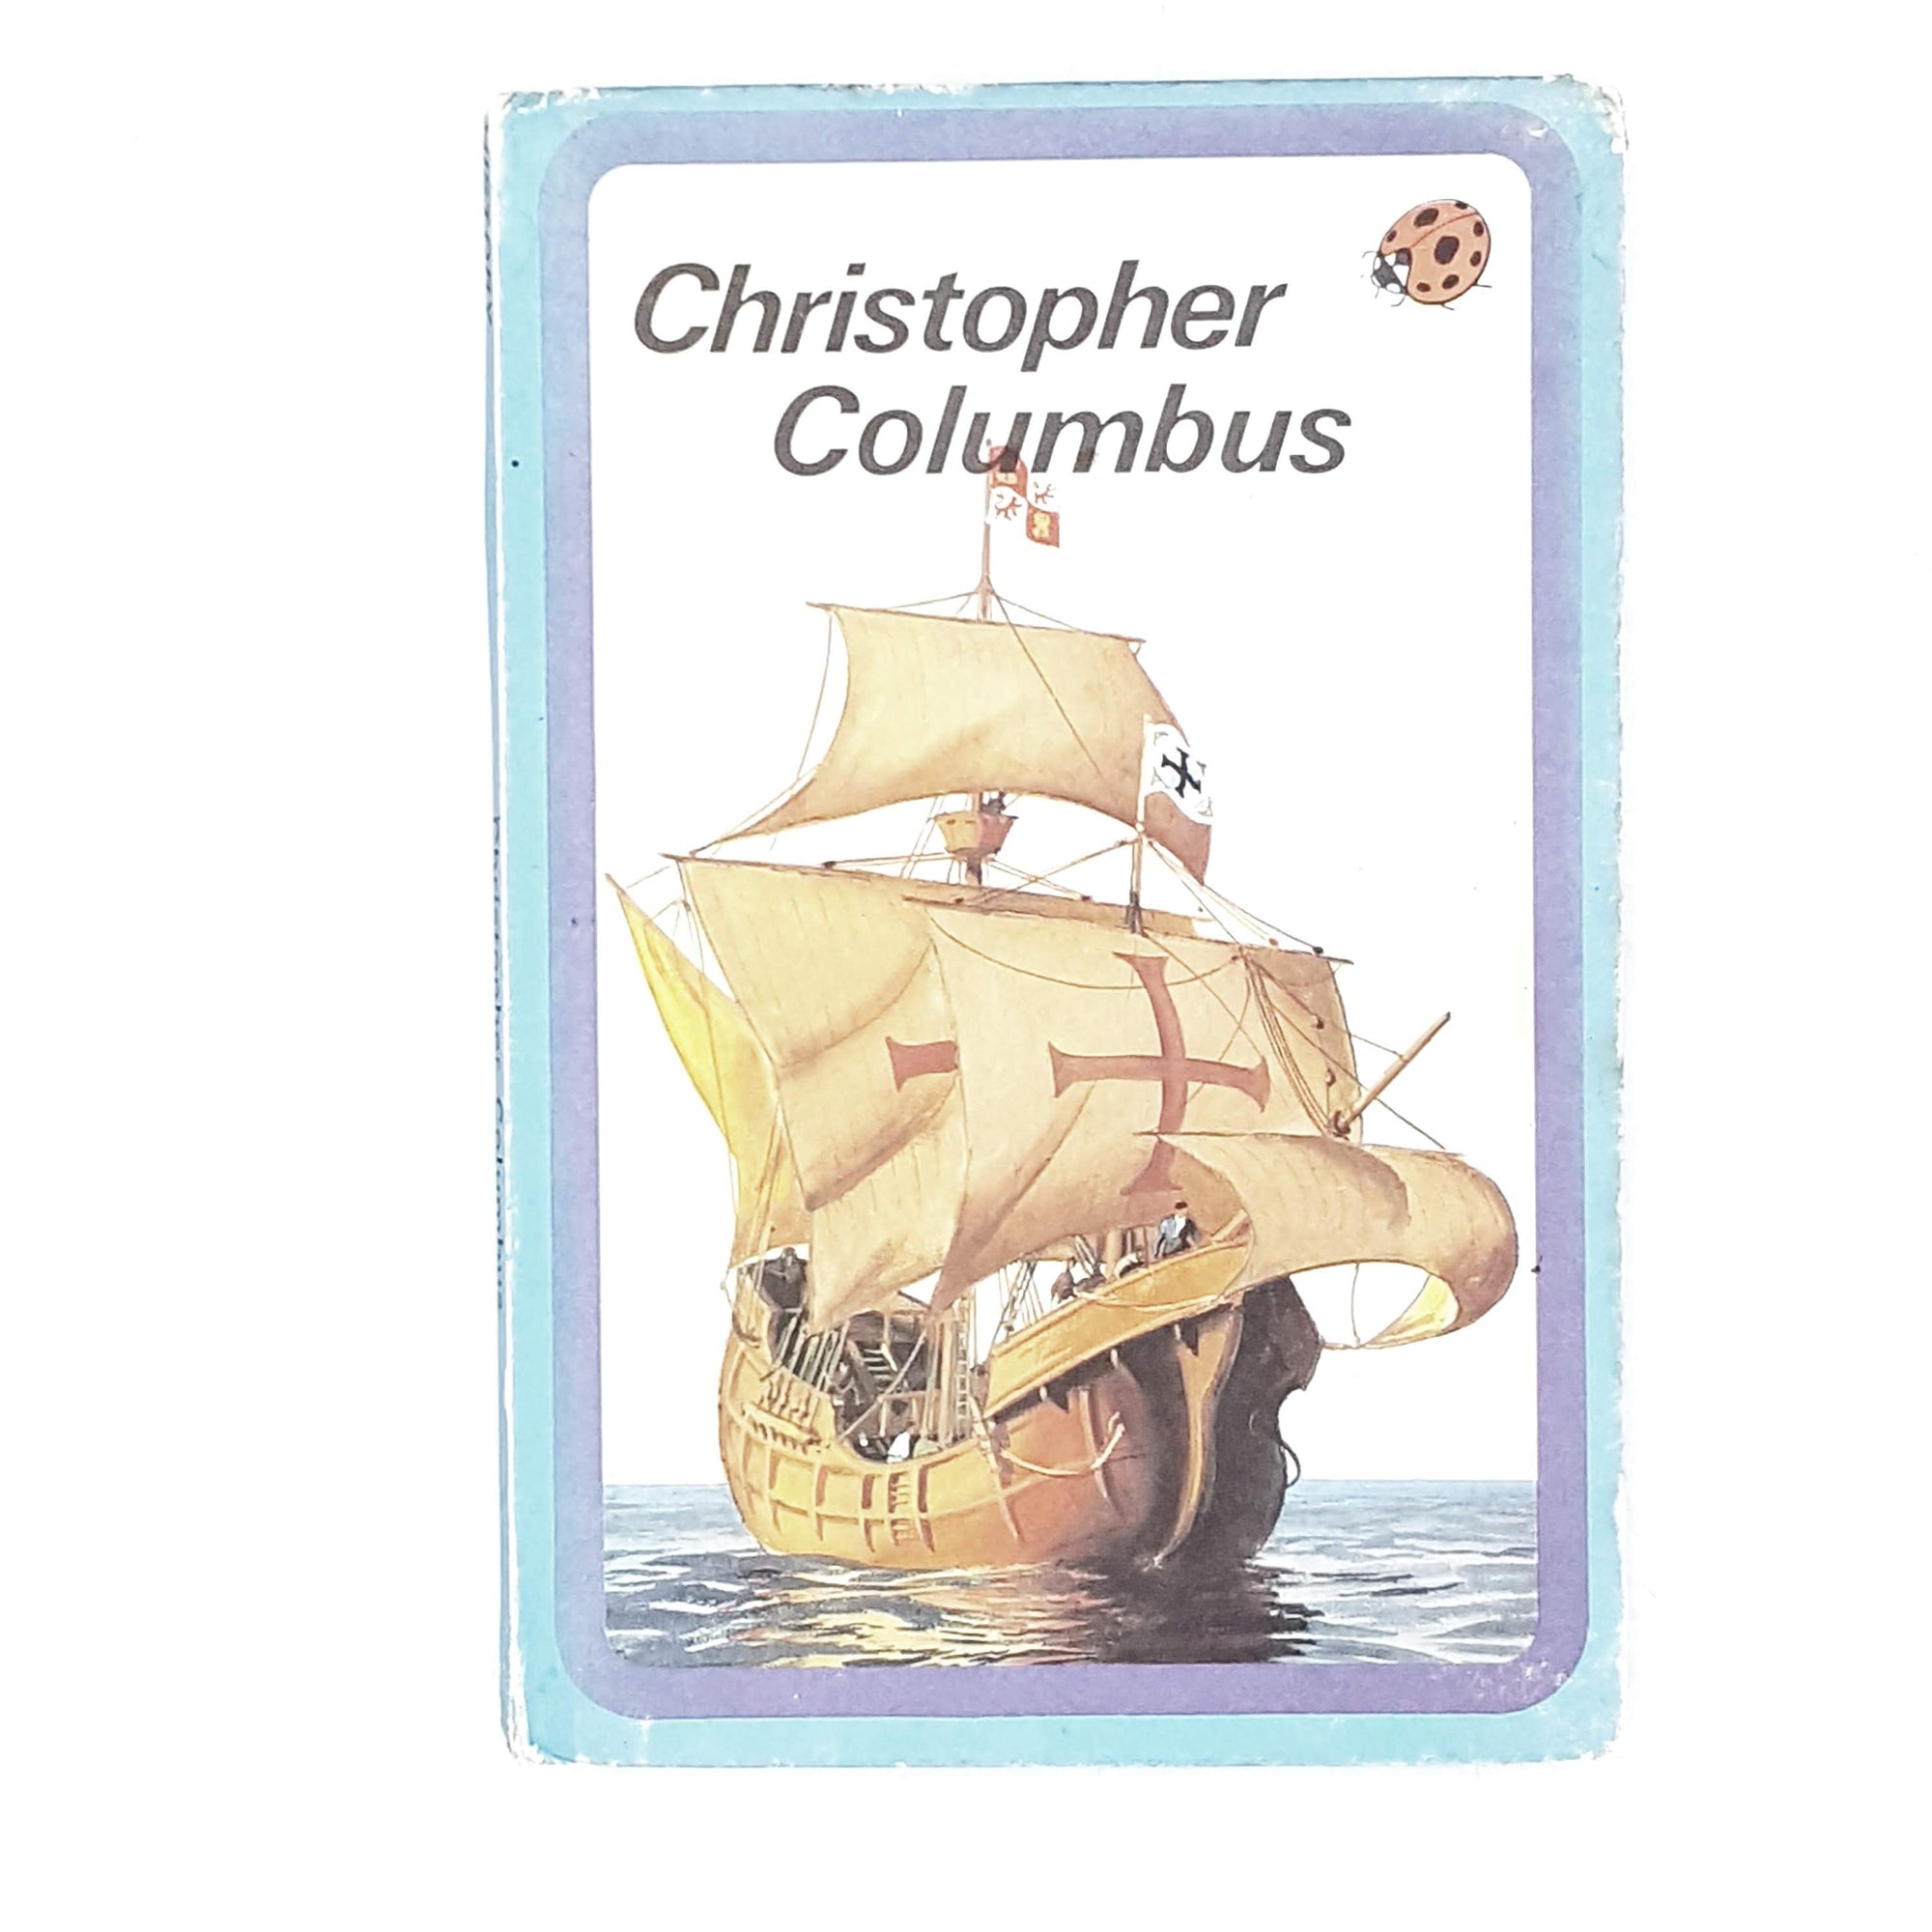 ladybird-history-christopher-columbus-1961-vintage-kindergarten-books-online-bookstore-country-house-library